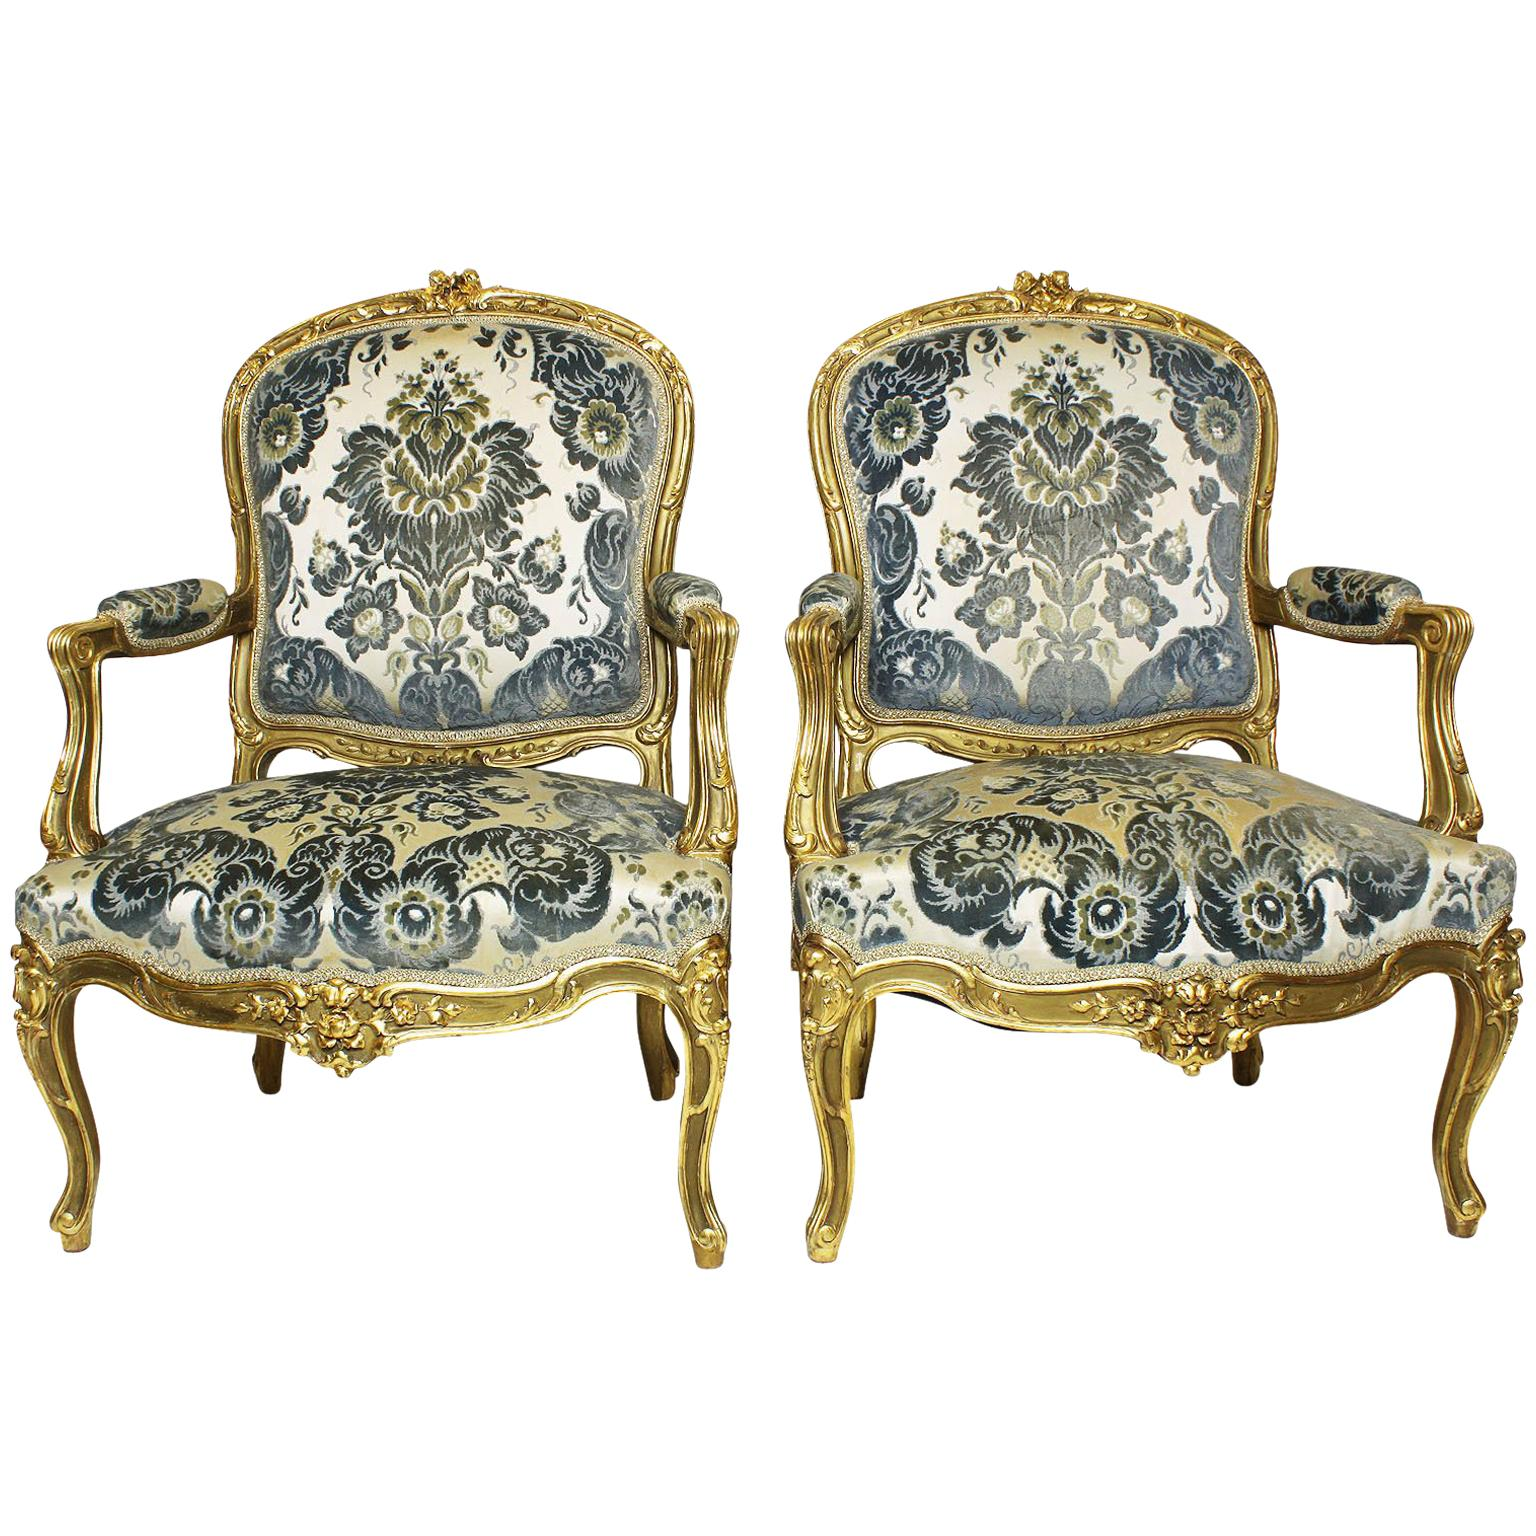 Pair of French 19th-20th Century Louis XV Style Giltwood Carved Rococo Armchairs